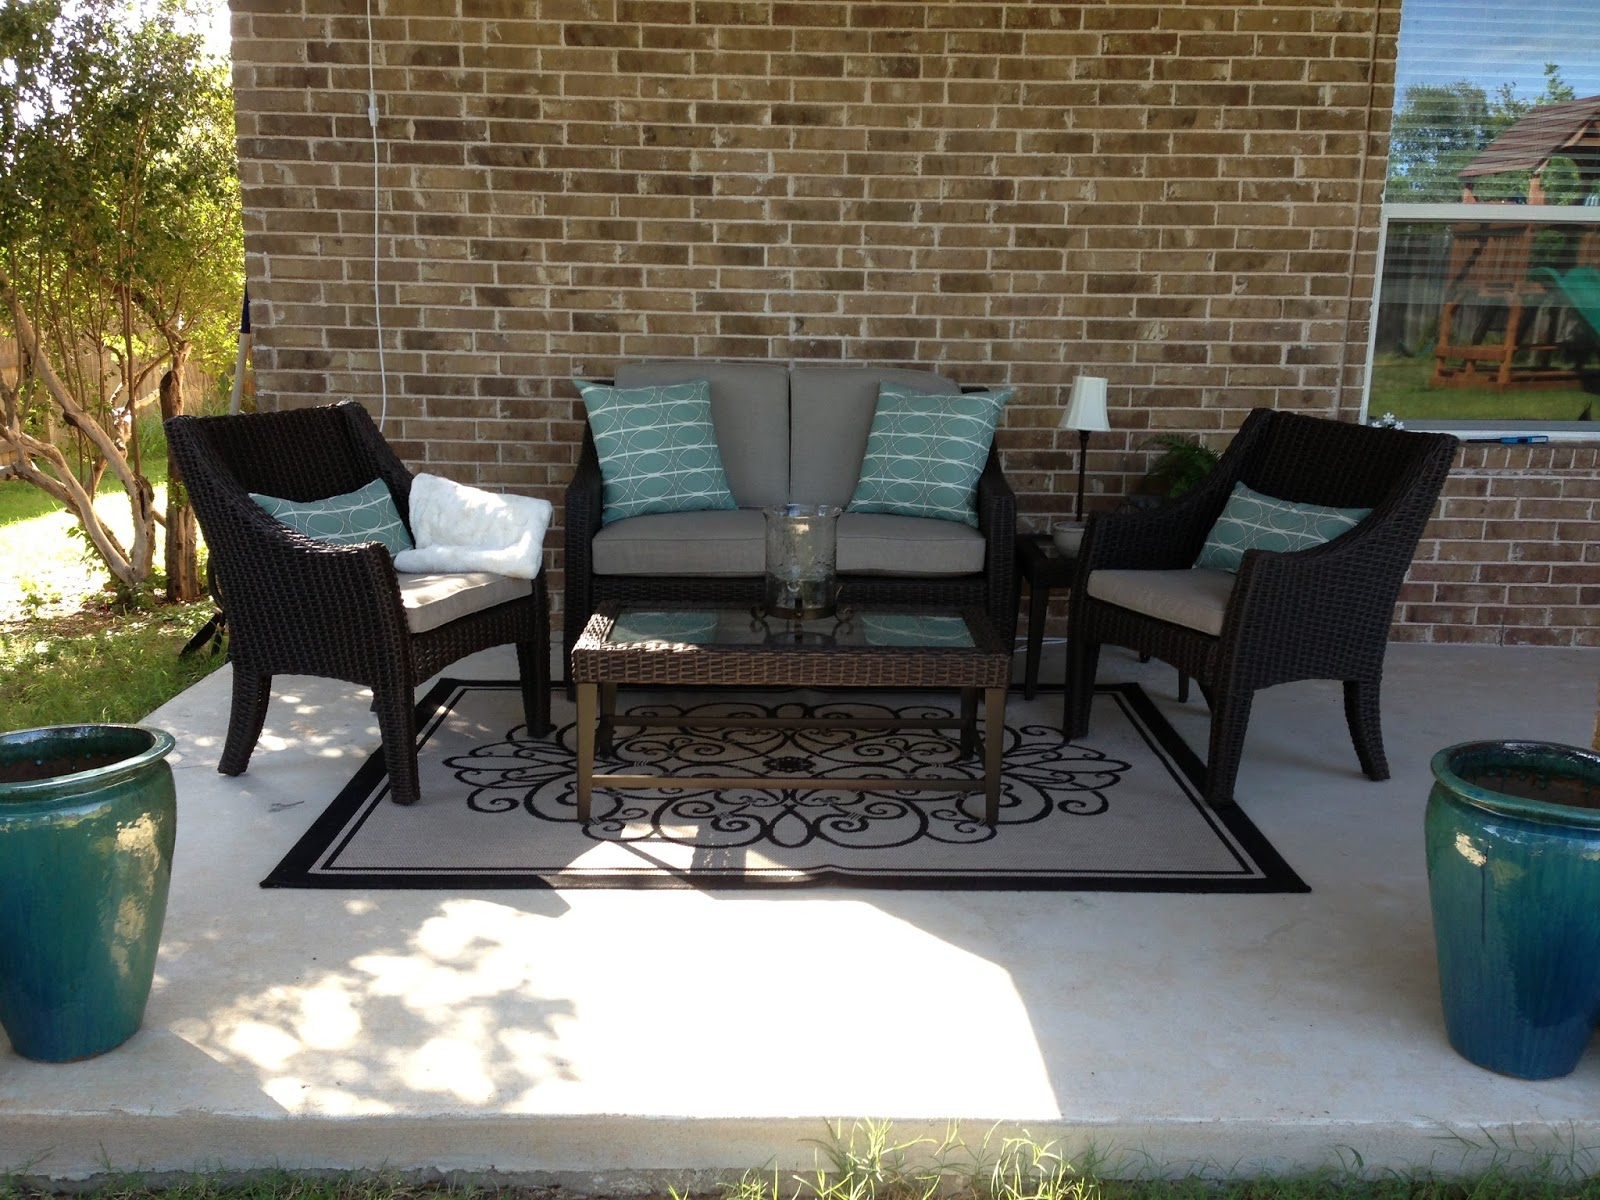 cha ottoman sets with patio diego your brands ideas rocking outstanding portofino wicker chair furniture for hidden fill rst san threshold